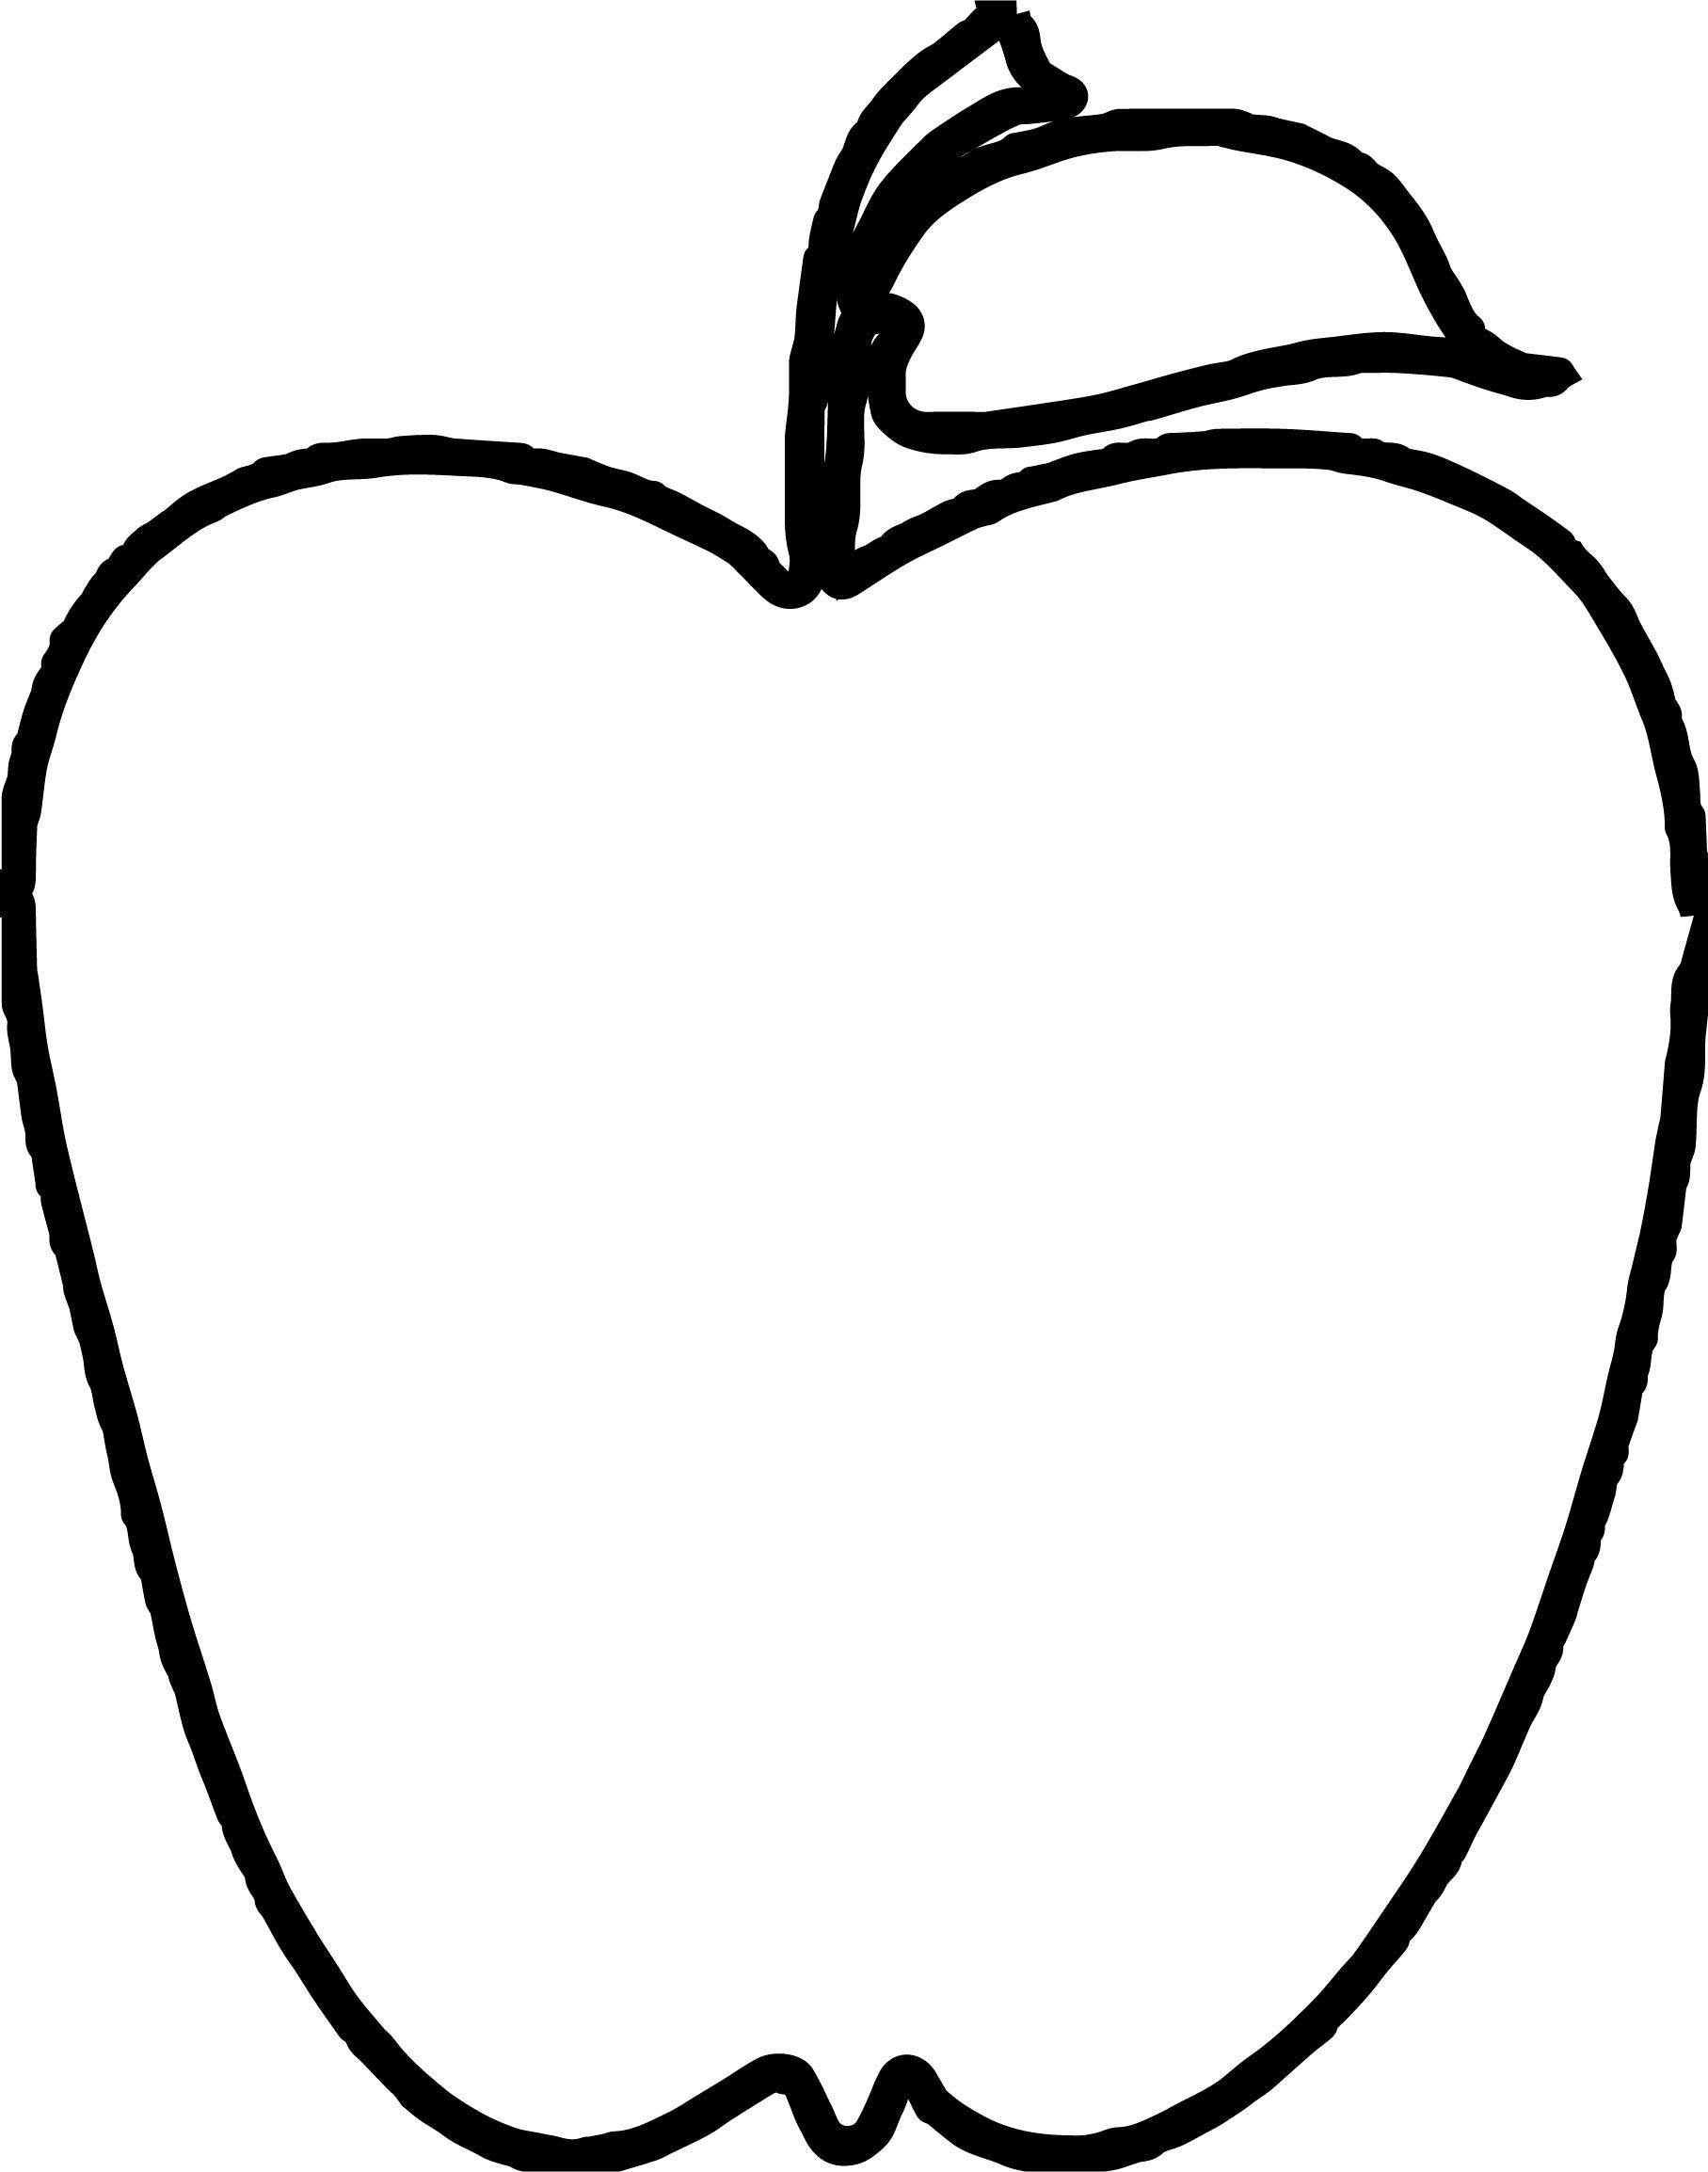 Coloring-Pictures-Of-Fruit-Coloring-Apple-Coloring-Sheet-Fruit